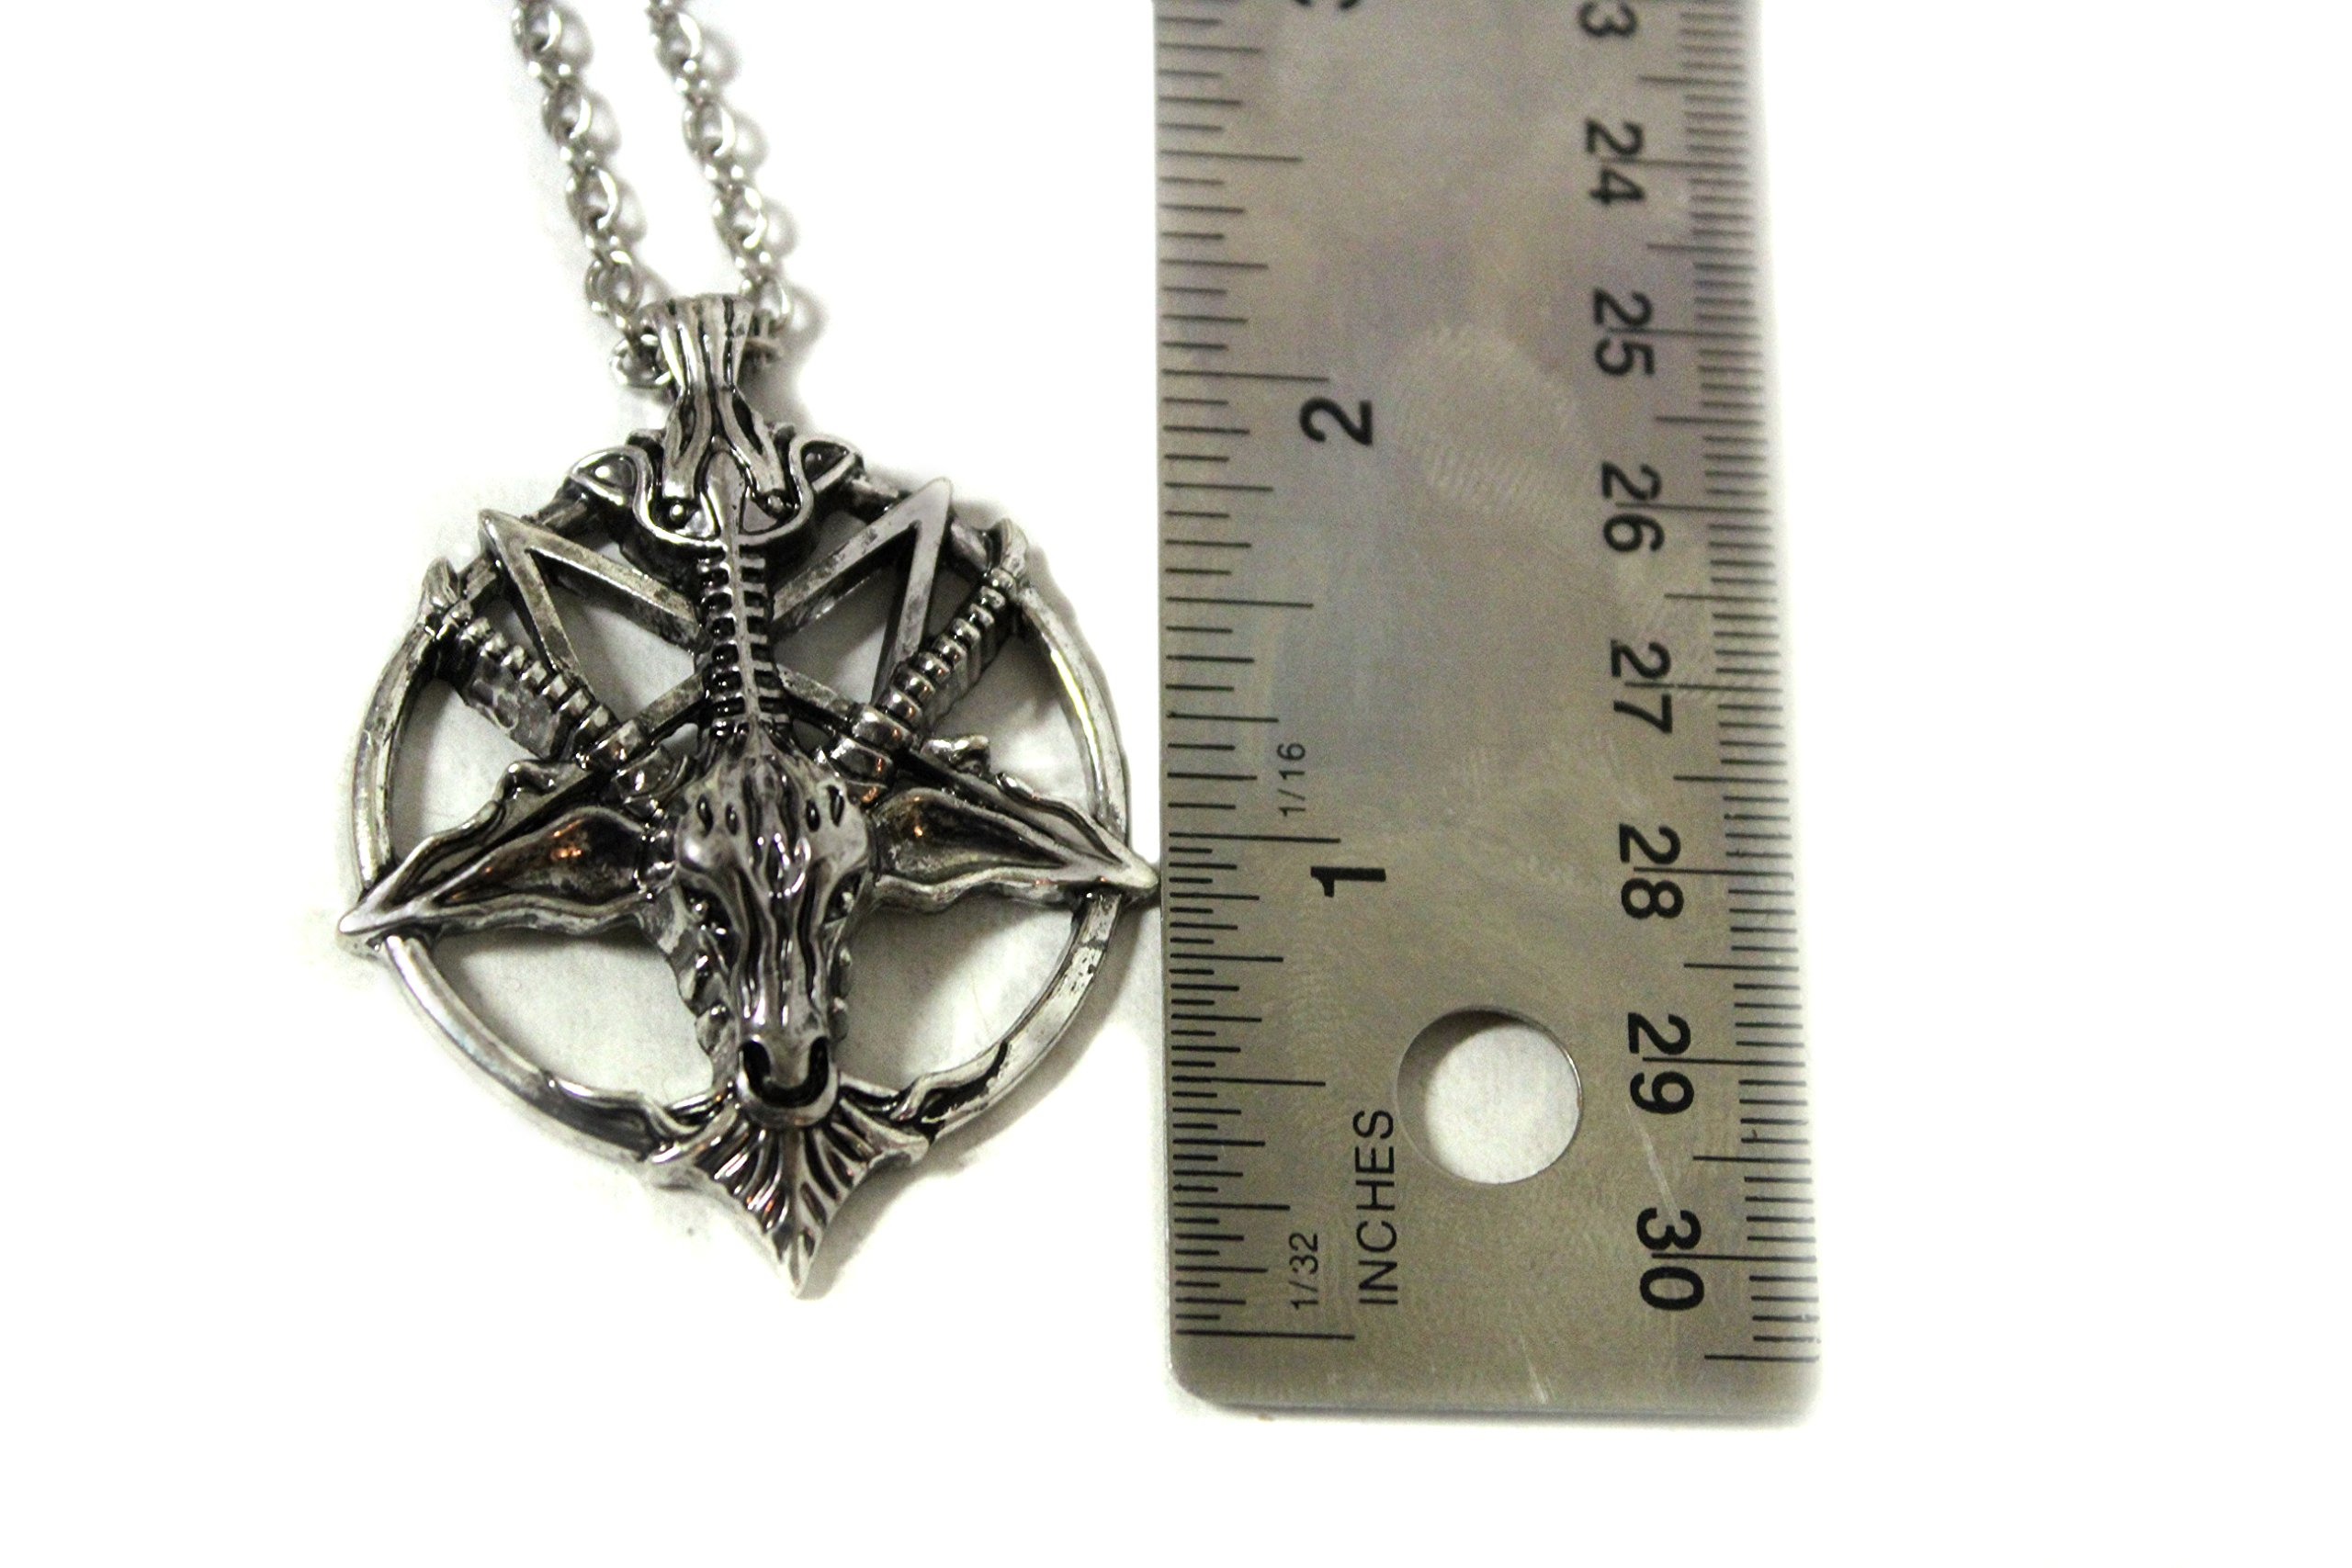 acrylic mendes occult necklace pendant pin satanic alloy zinc ritual baphomet goat material magick demonic of